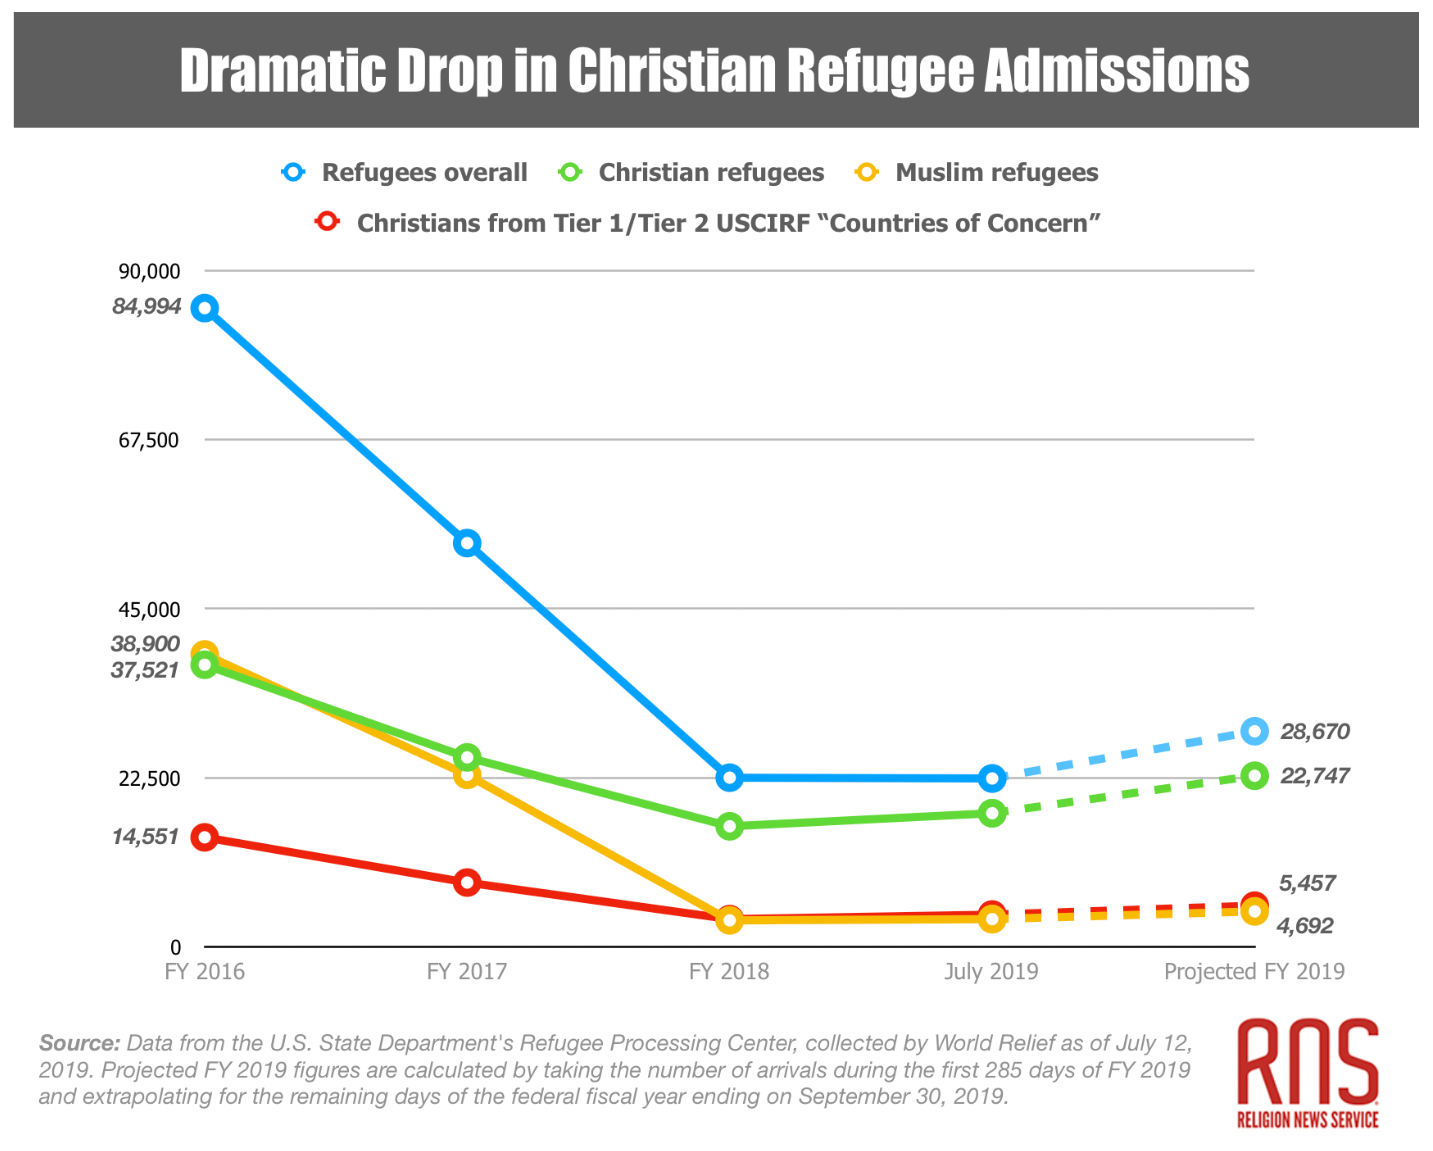 This graph shows a dramatic drop in Christian refugee admissions and refugees overall.